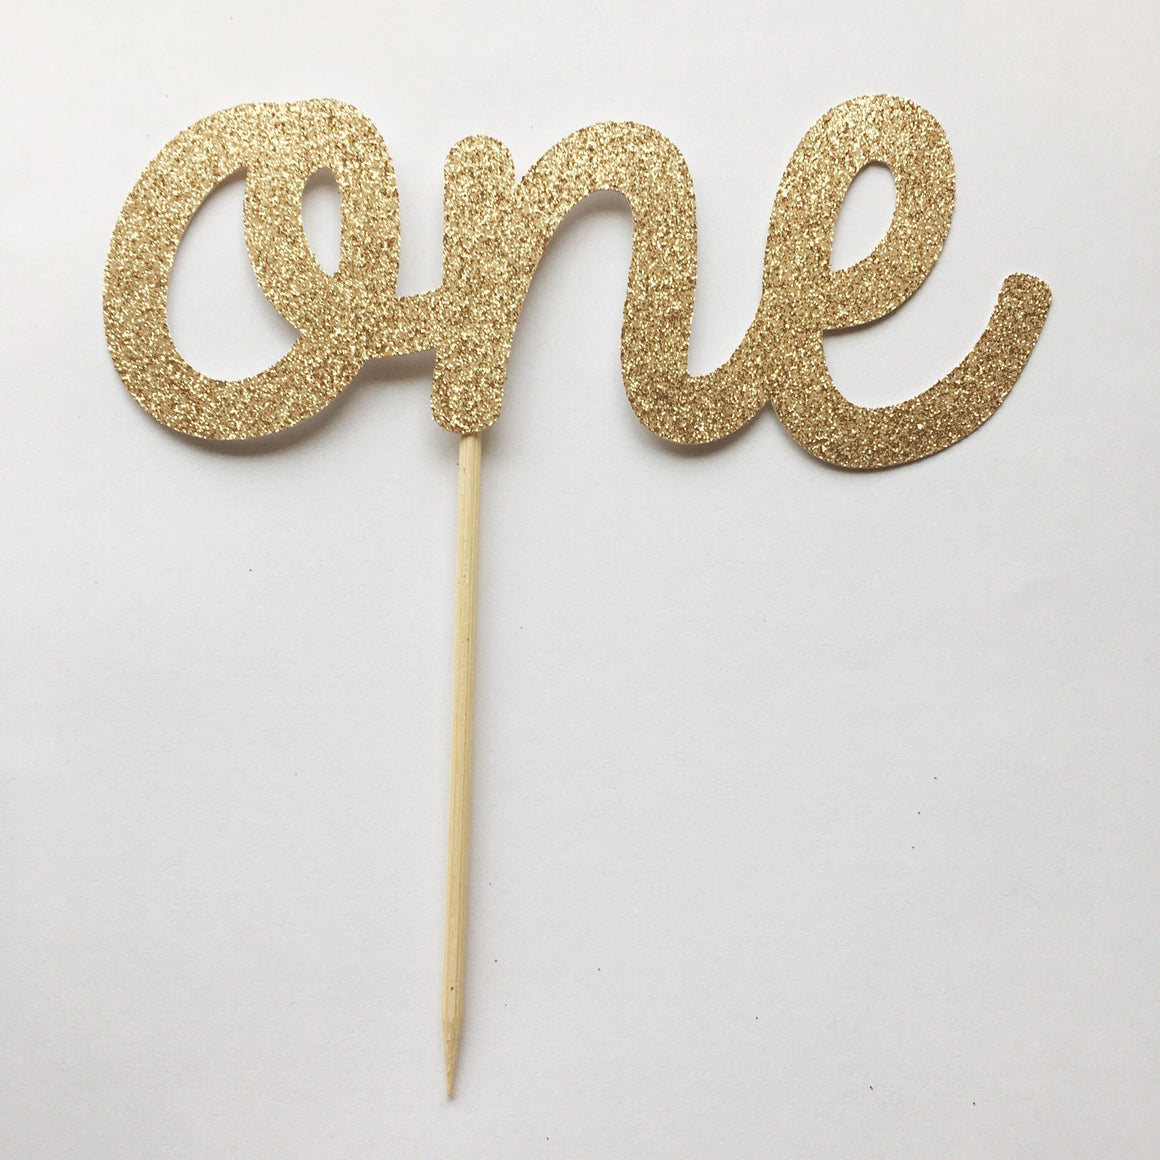 CAKE TOPPER - ONE GLITTER WHITE GOLD, Picks + Toppers, BON + CO - Bon + Co. Party Studio